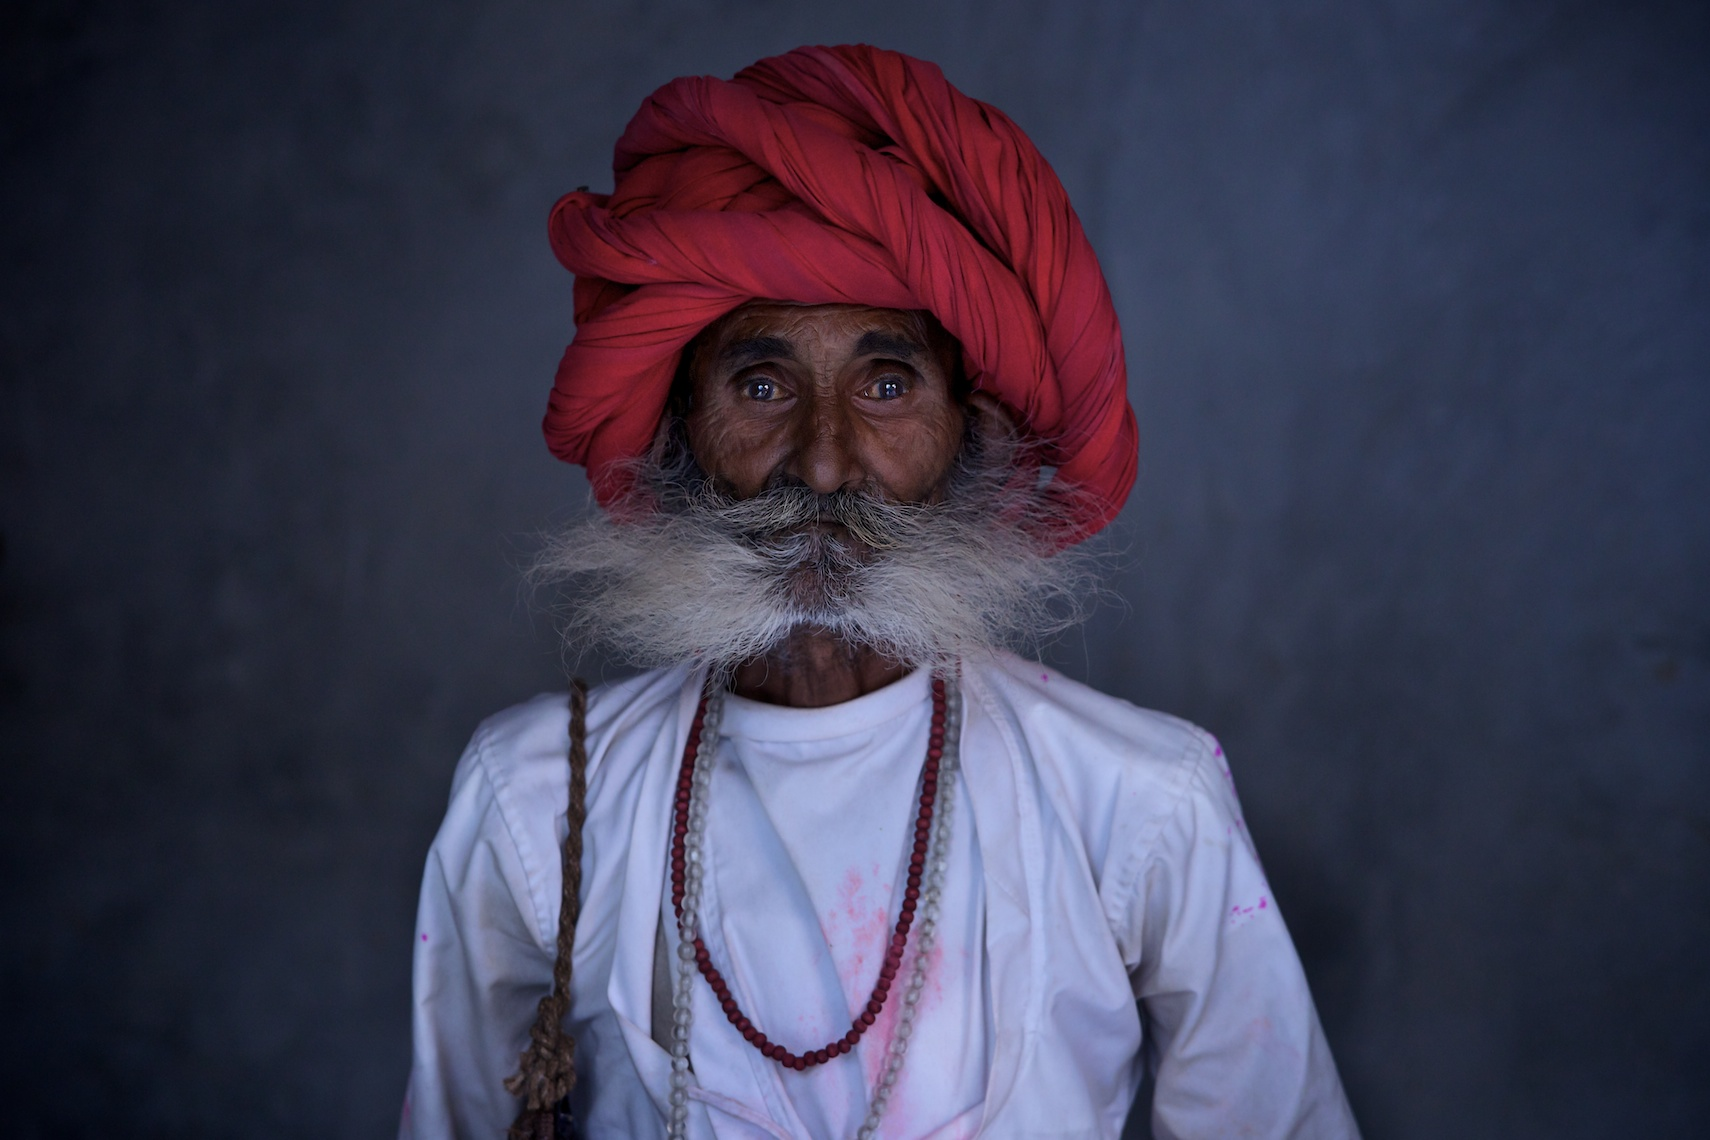 Portraits of India - Holi festival - with Steve Mccurry